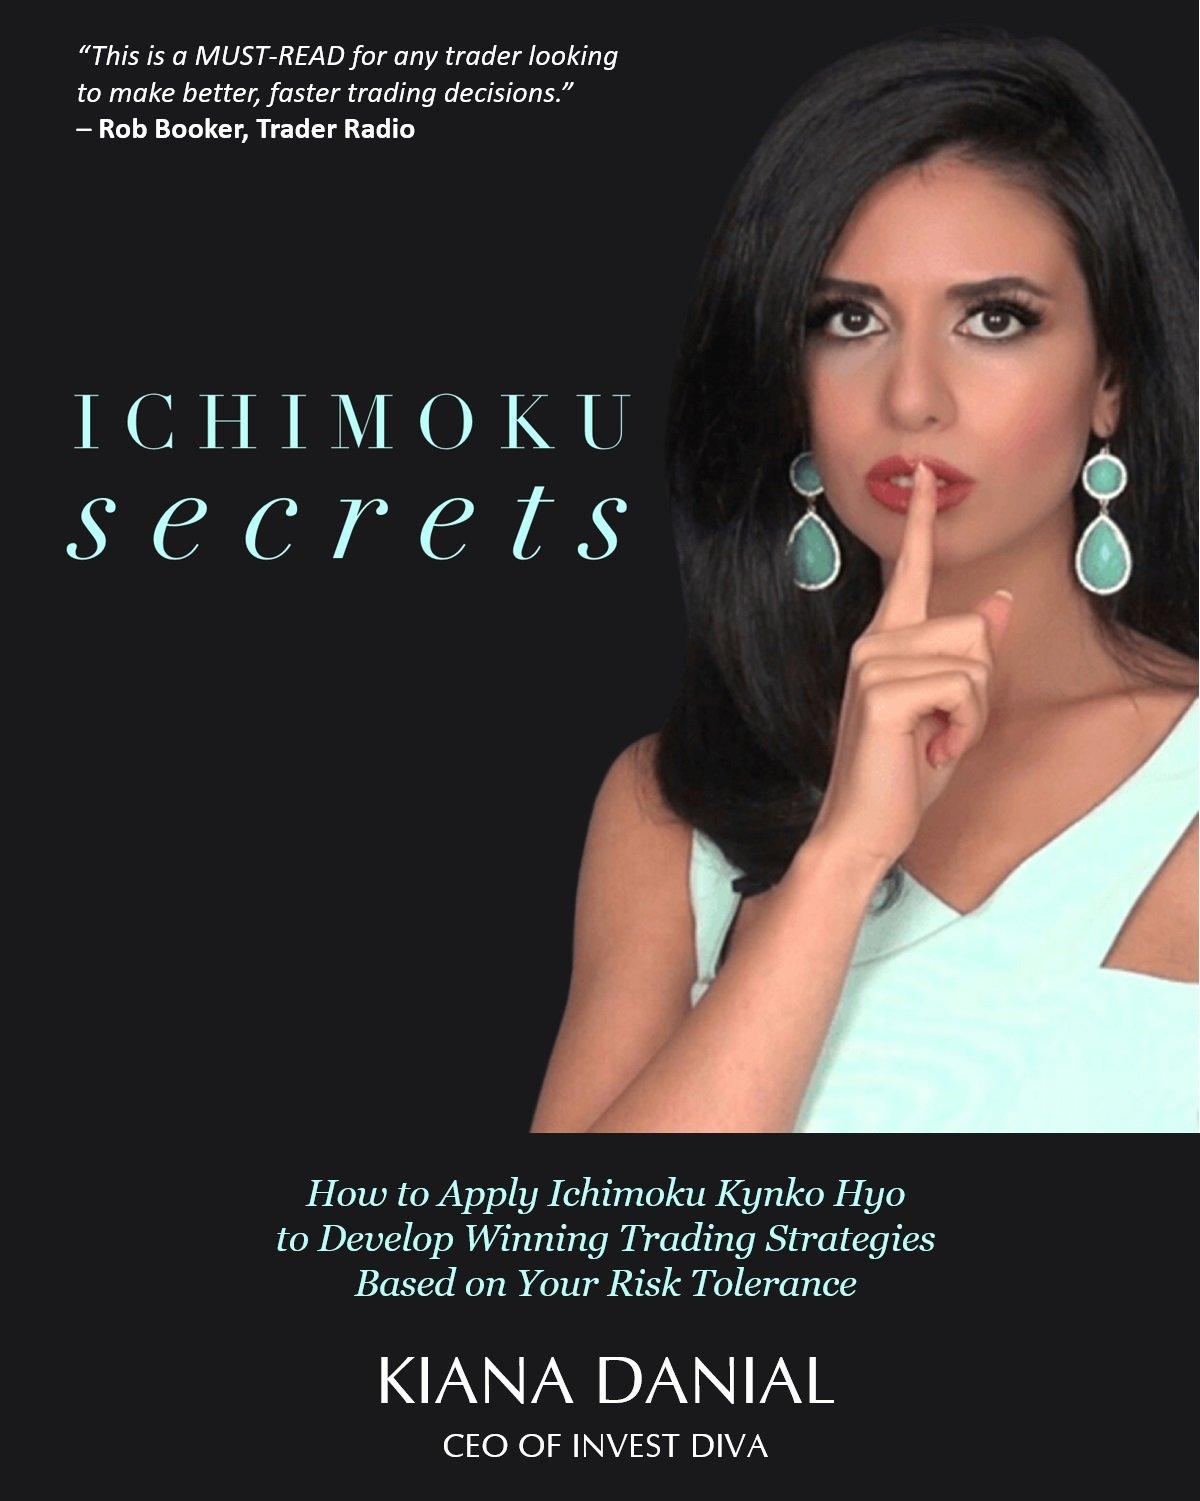 Ichimoku Secrets  A 100 Page FAST And EASY Guide On How To Apply Ichimoku Kynko Hyo To Develop Winning Trading Strategies Based On Your Risk Tolerance  English Edition